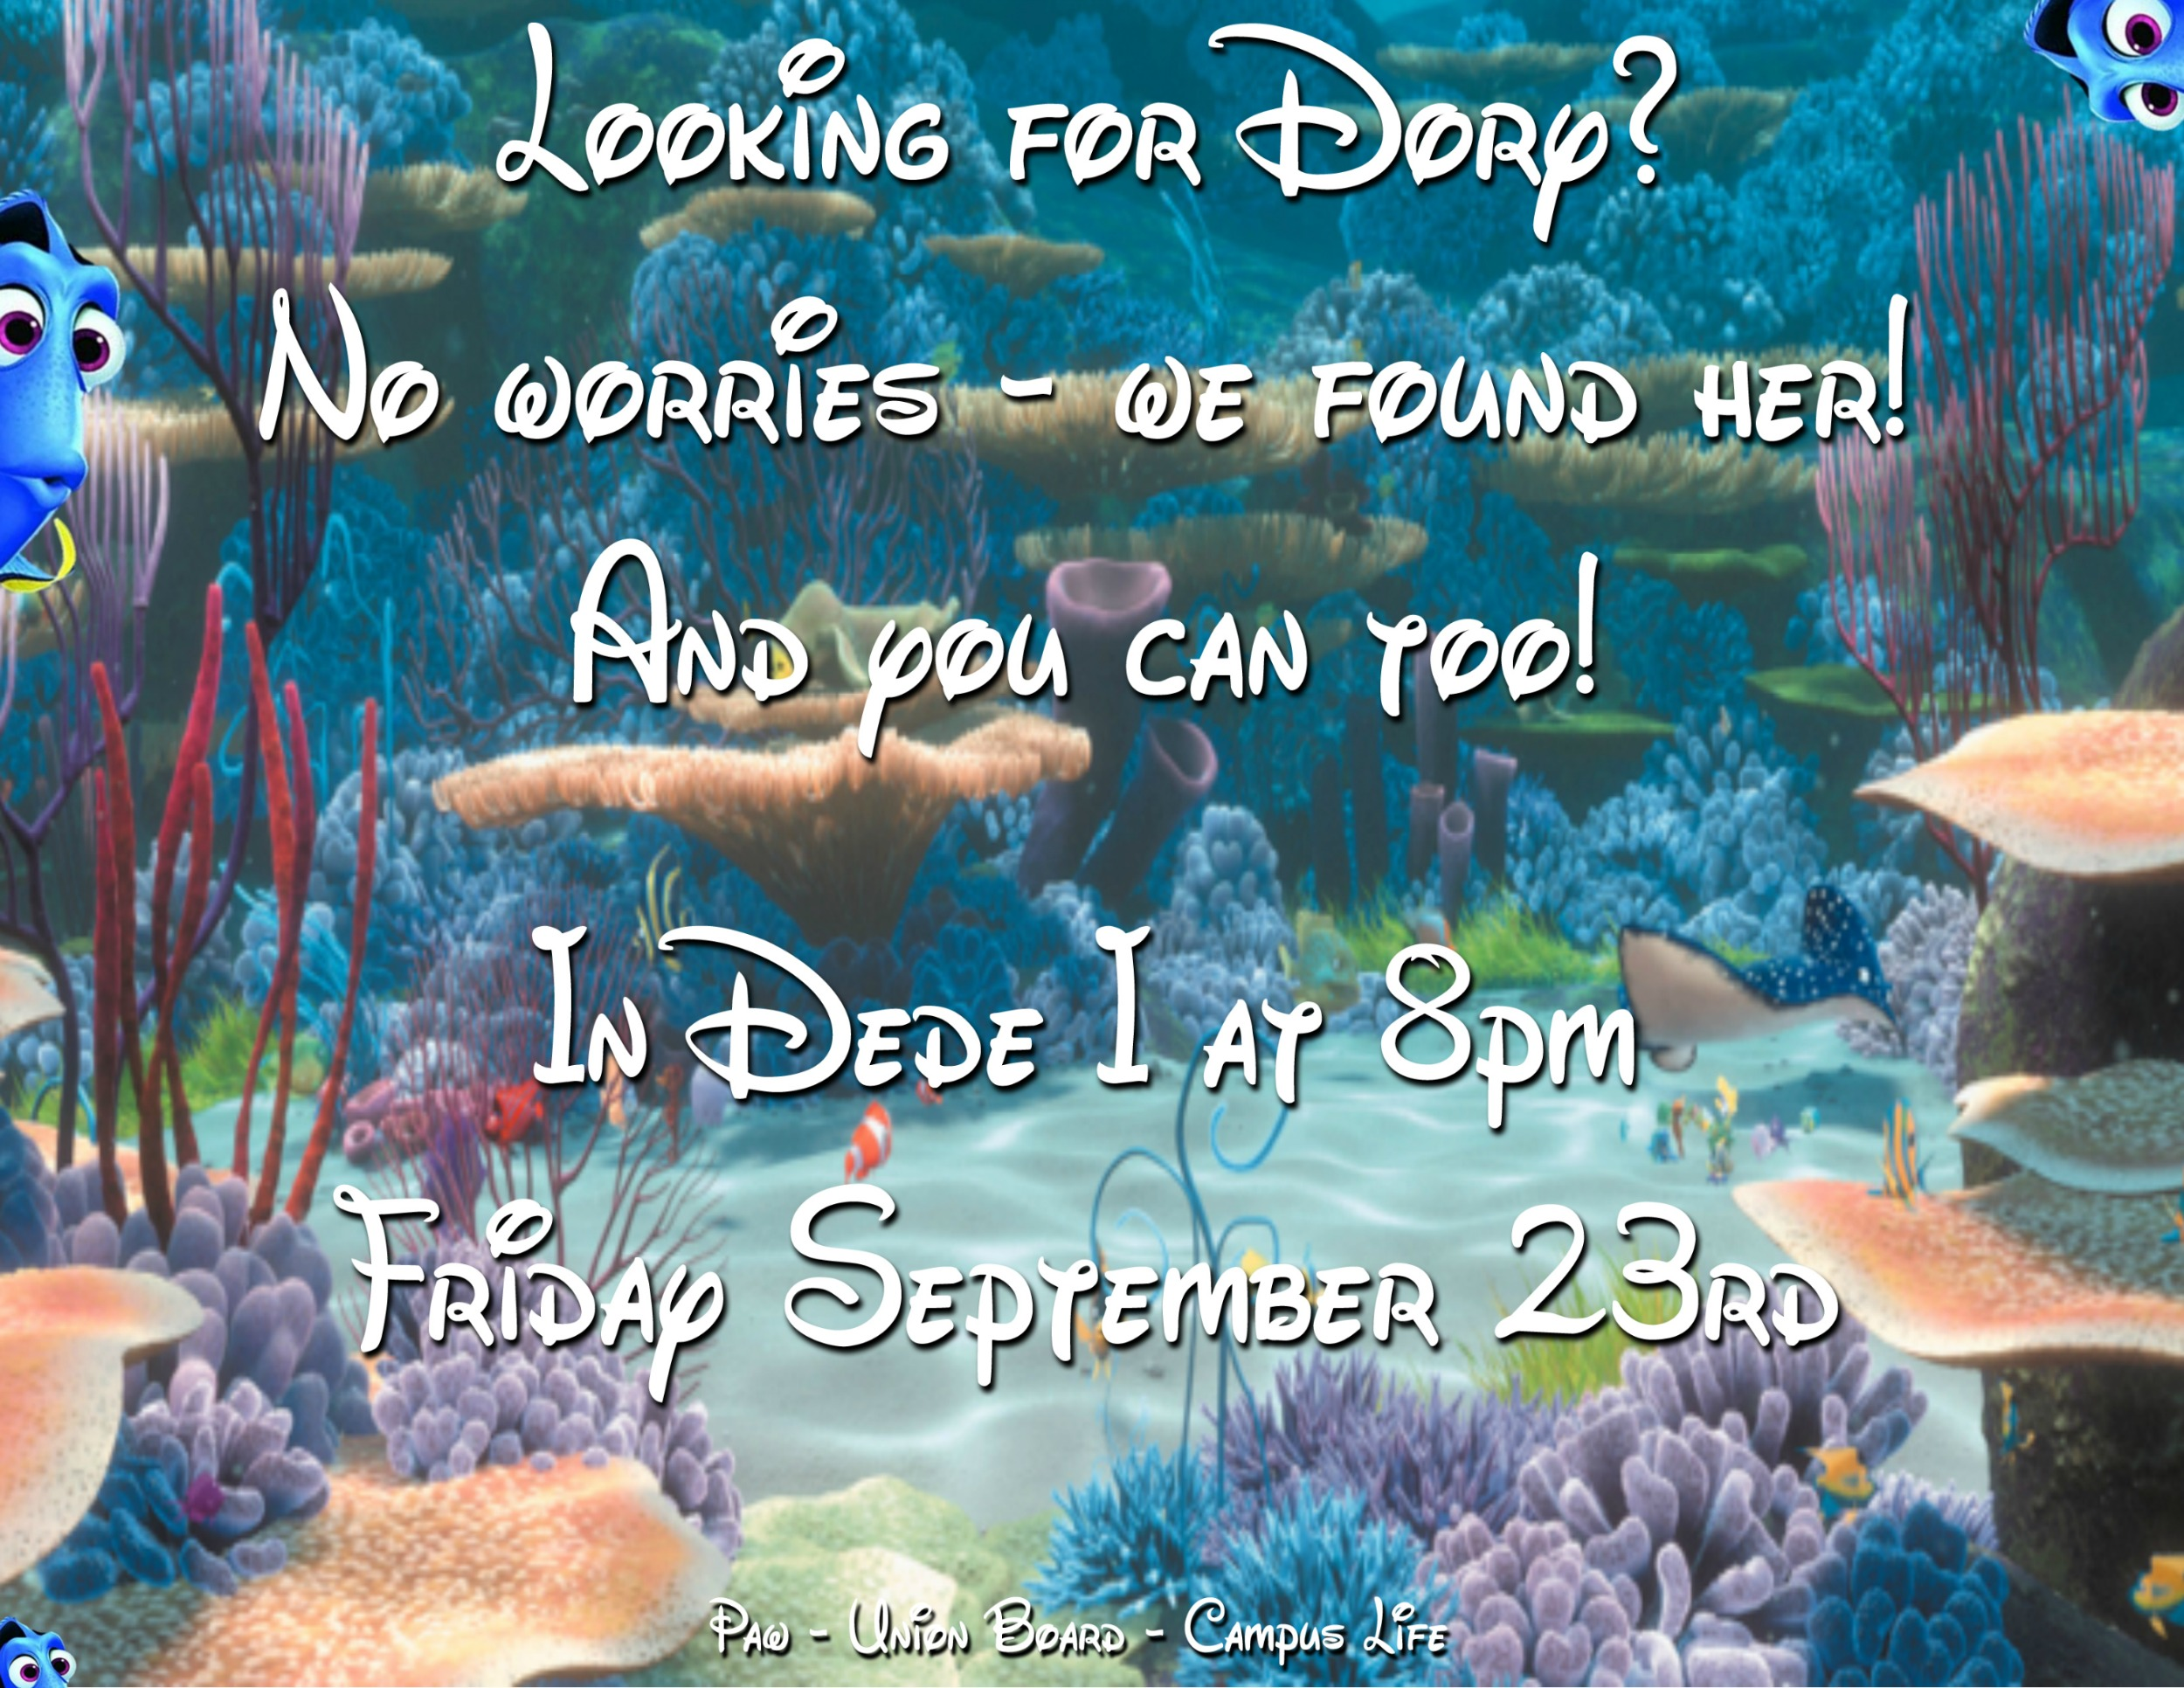 Campus Life Presents Finding Dory in Dede I Sept 23rd at 8pm